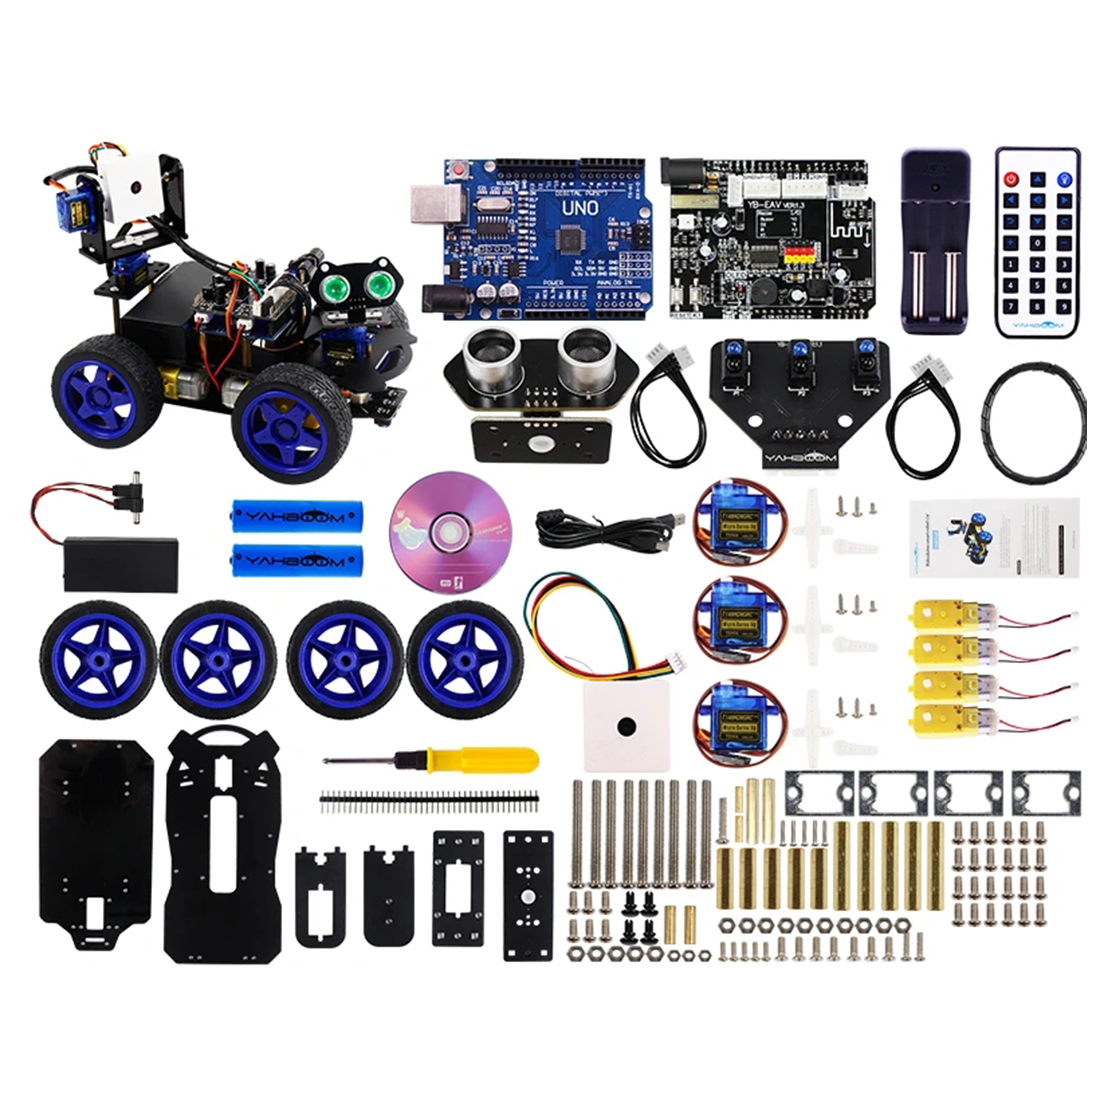 Scratch3.0 Luminescent Ultrasonic Module Smart Robot Car Wifi Camera Gimbal Kit For Arduino UNO(No Battery)(With Two Batteries)